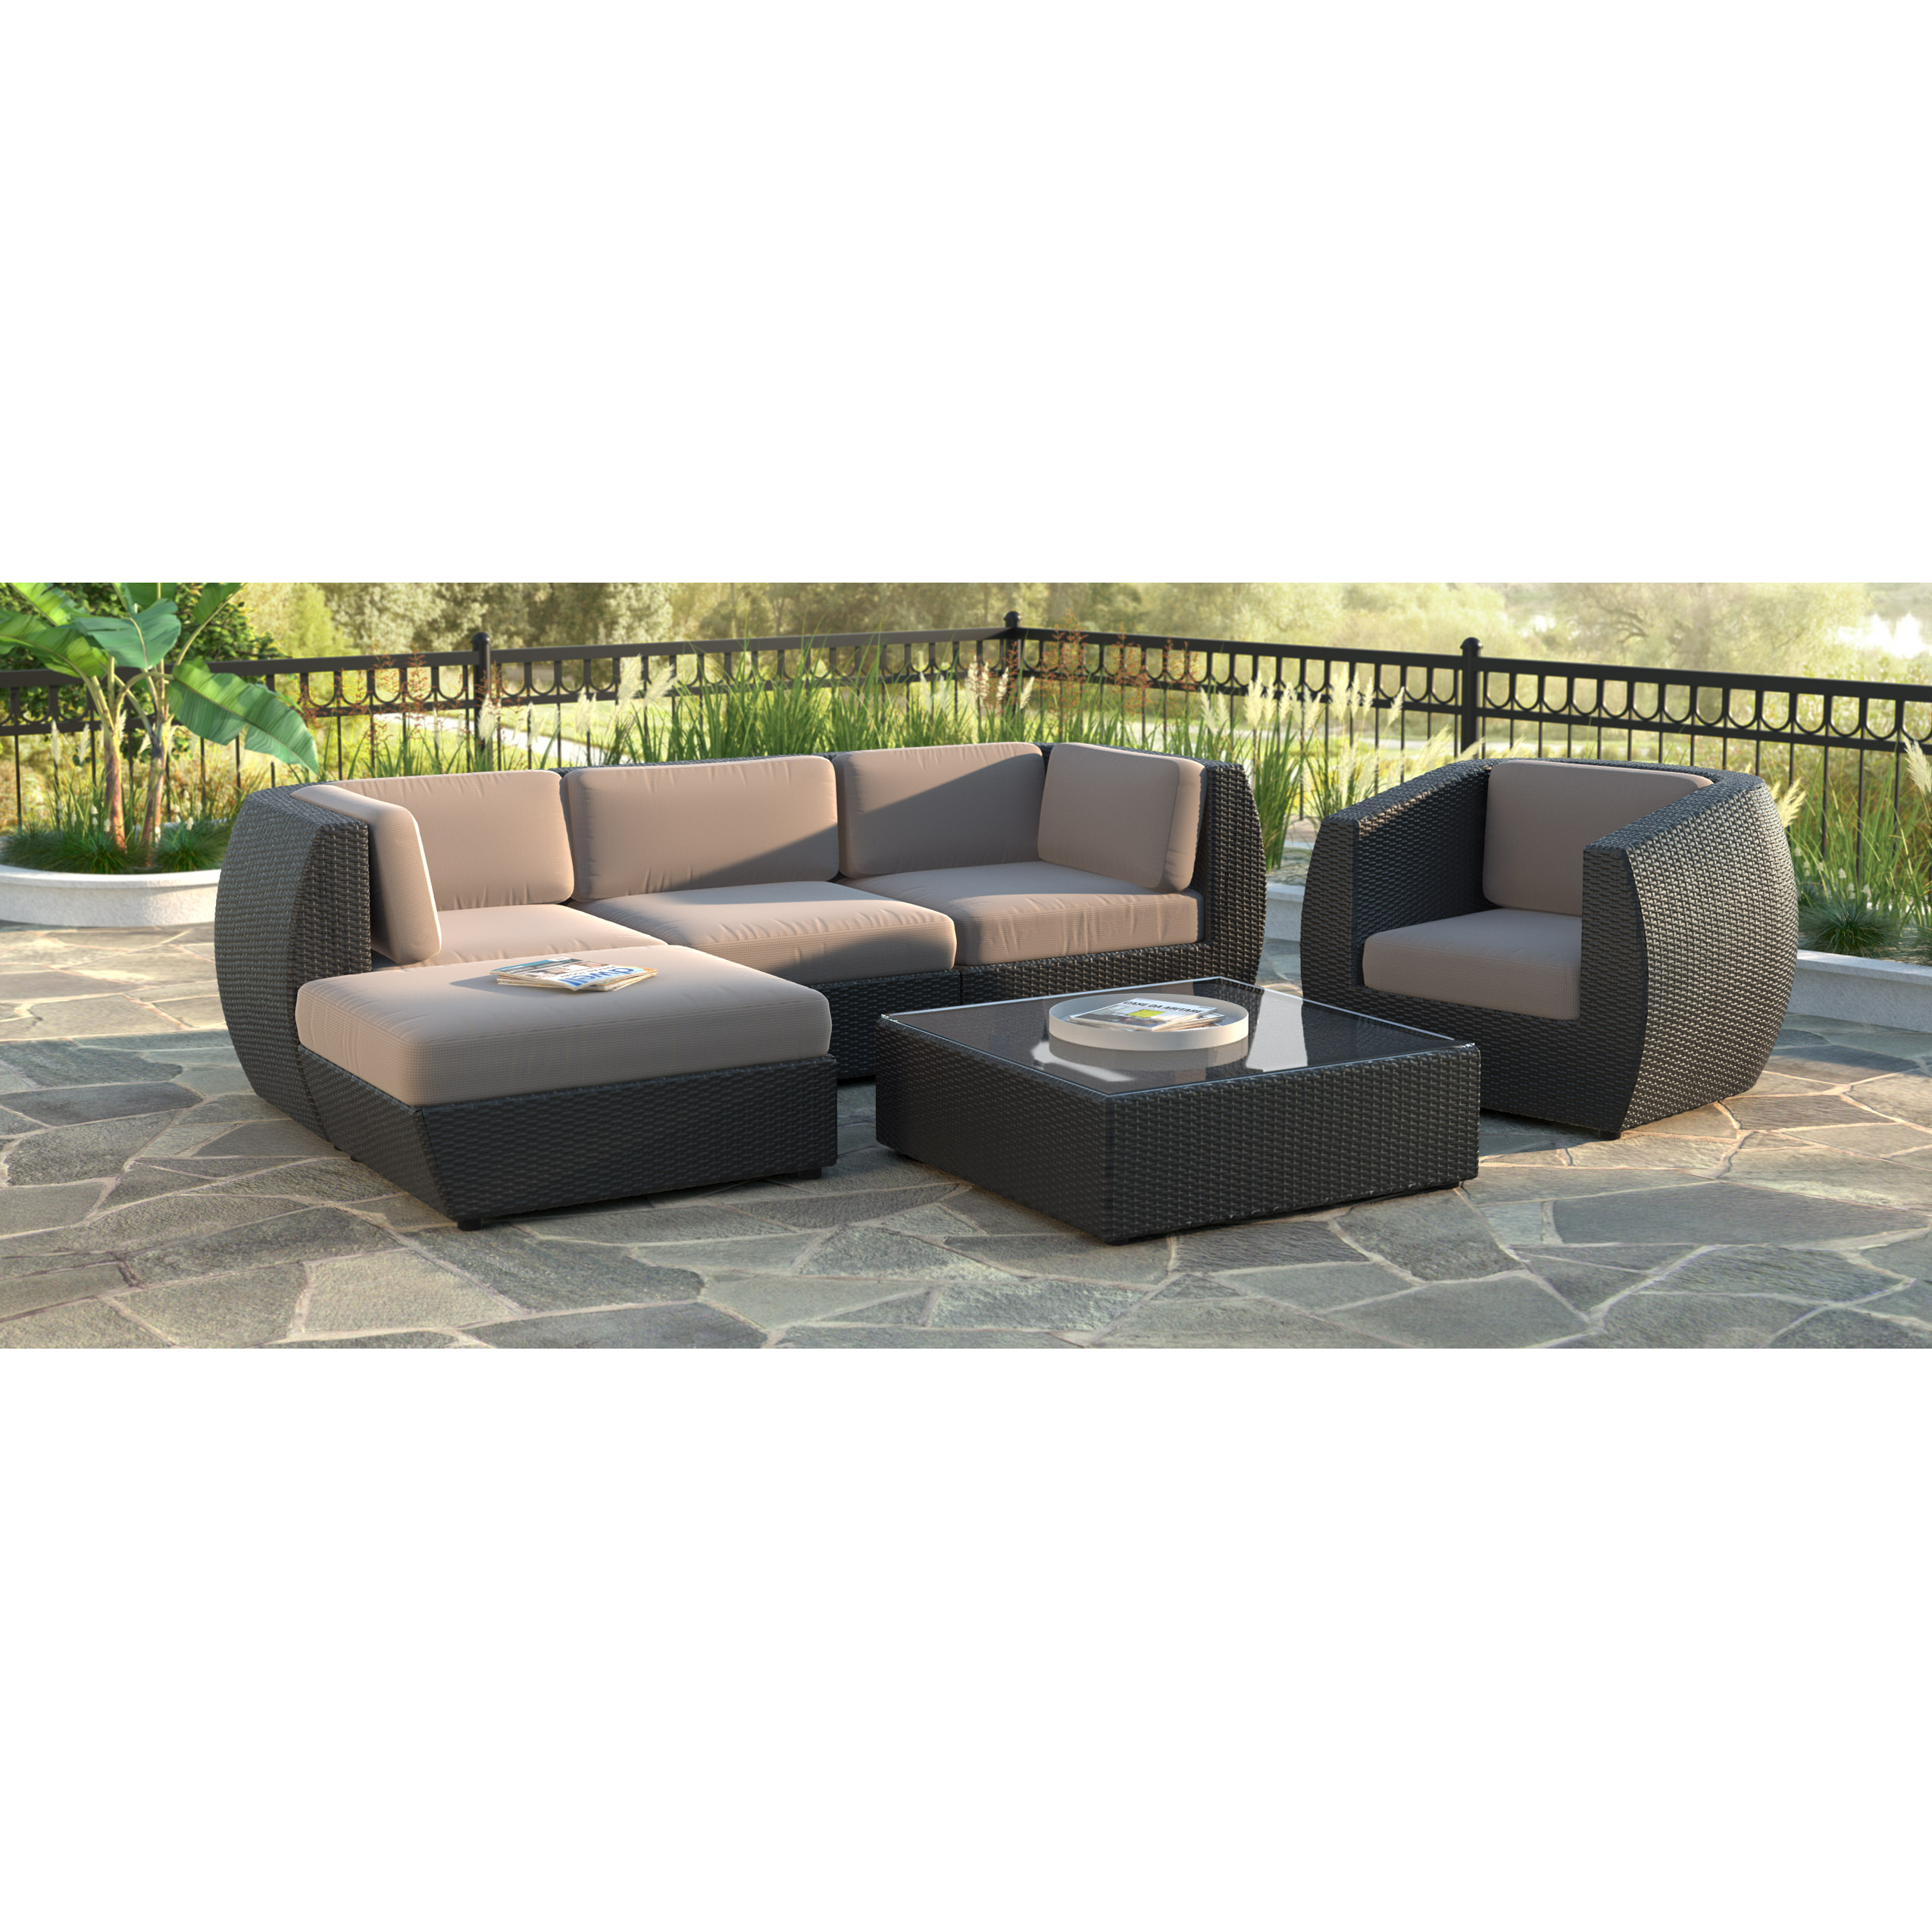 Curved Lounges Corliving Seattle Curved 6 Pc Sofa With Chaise Lounge And